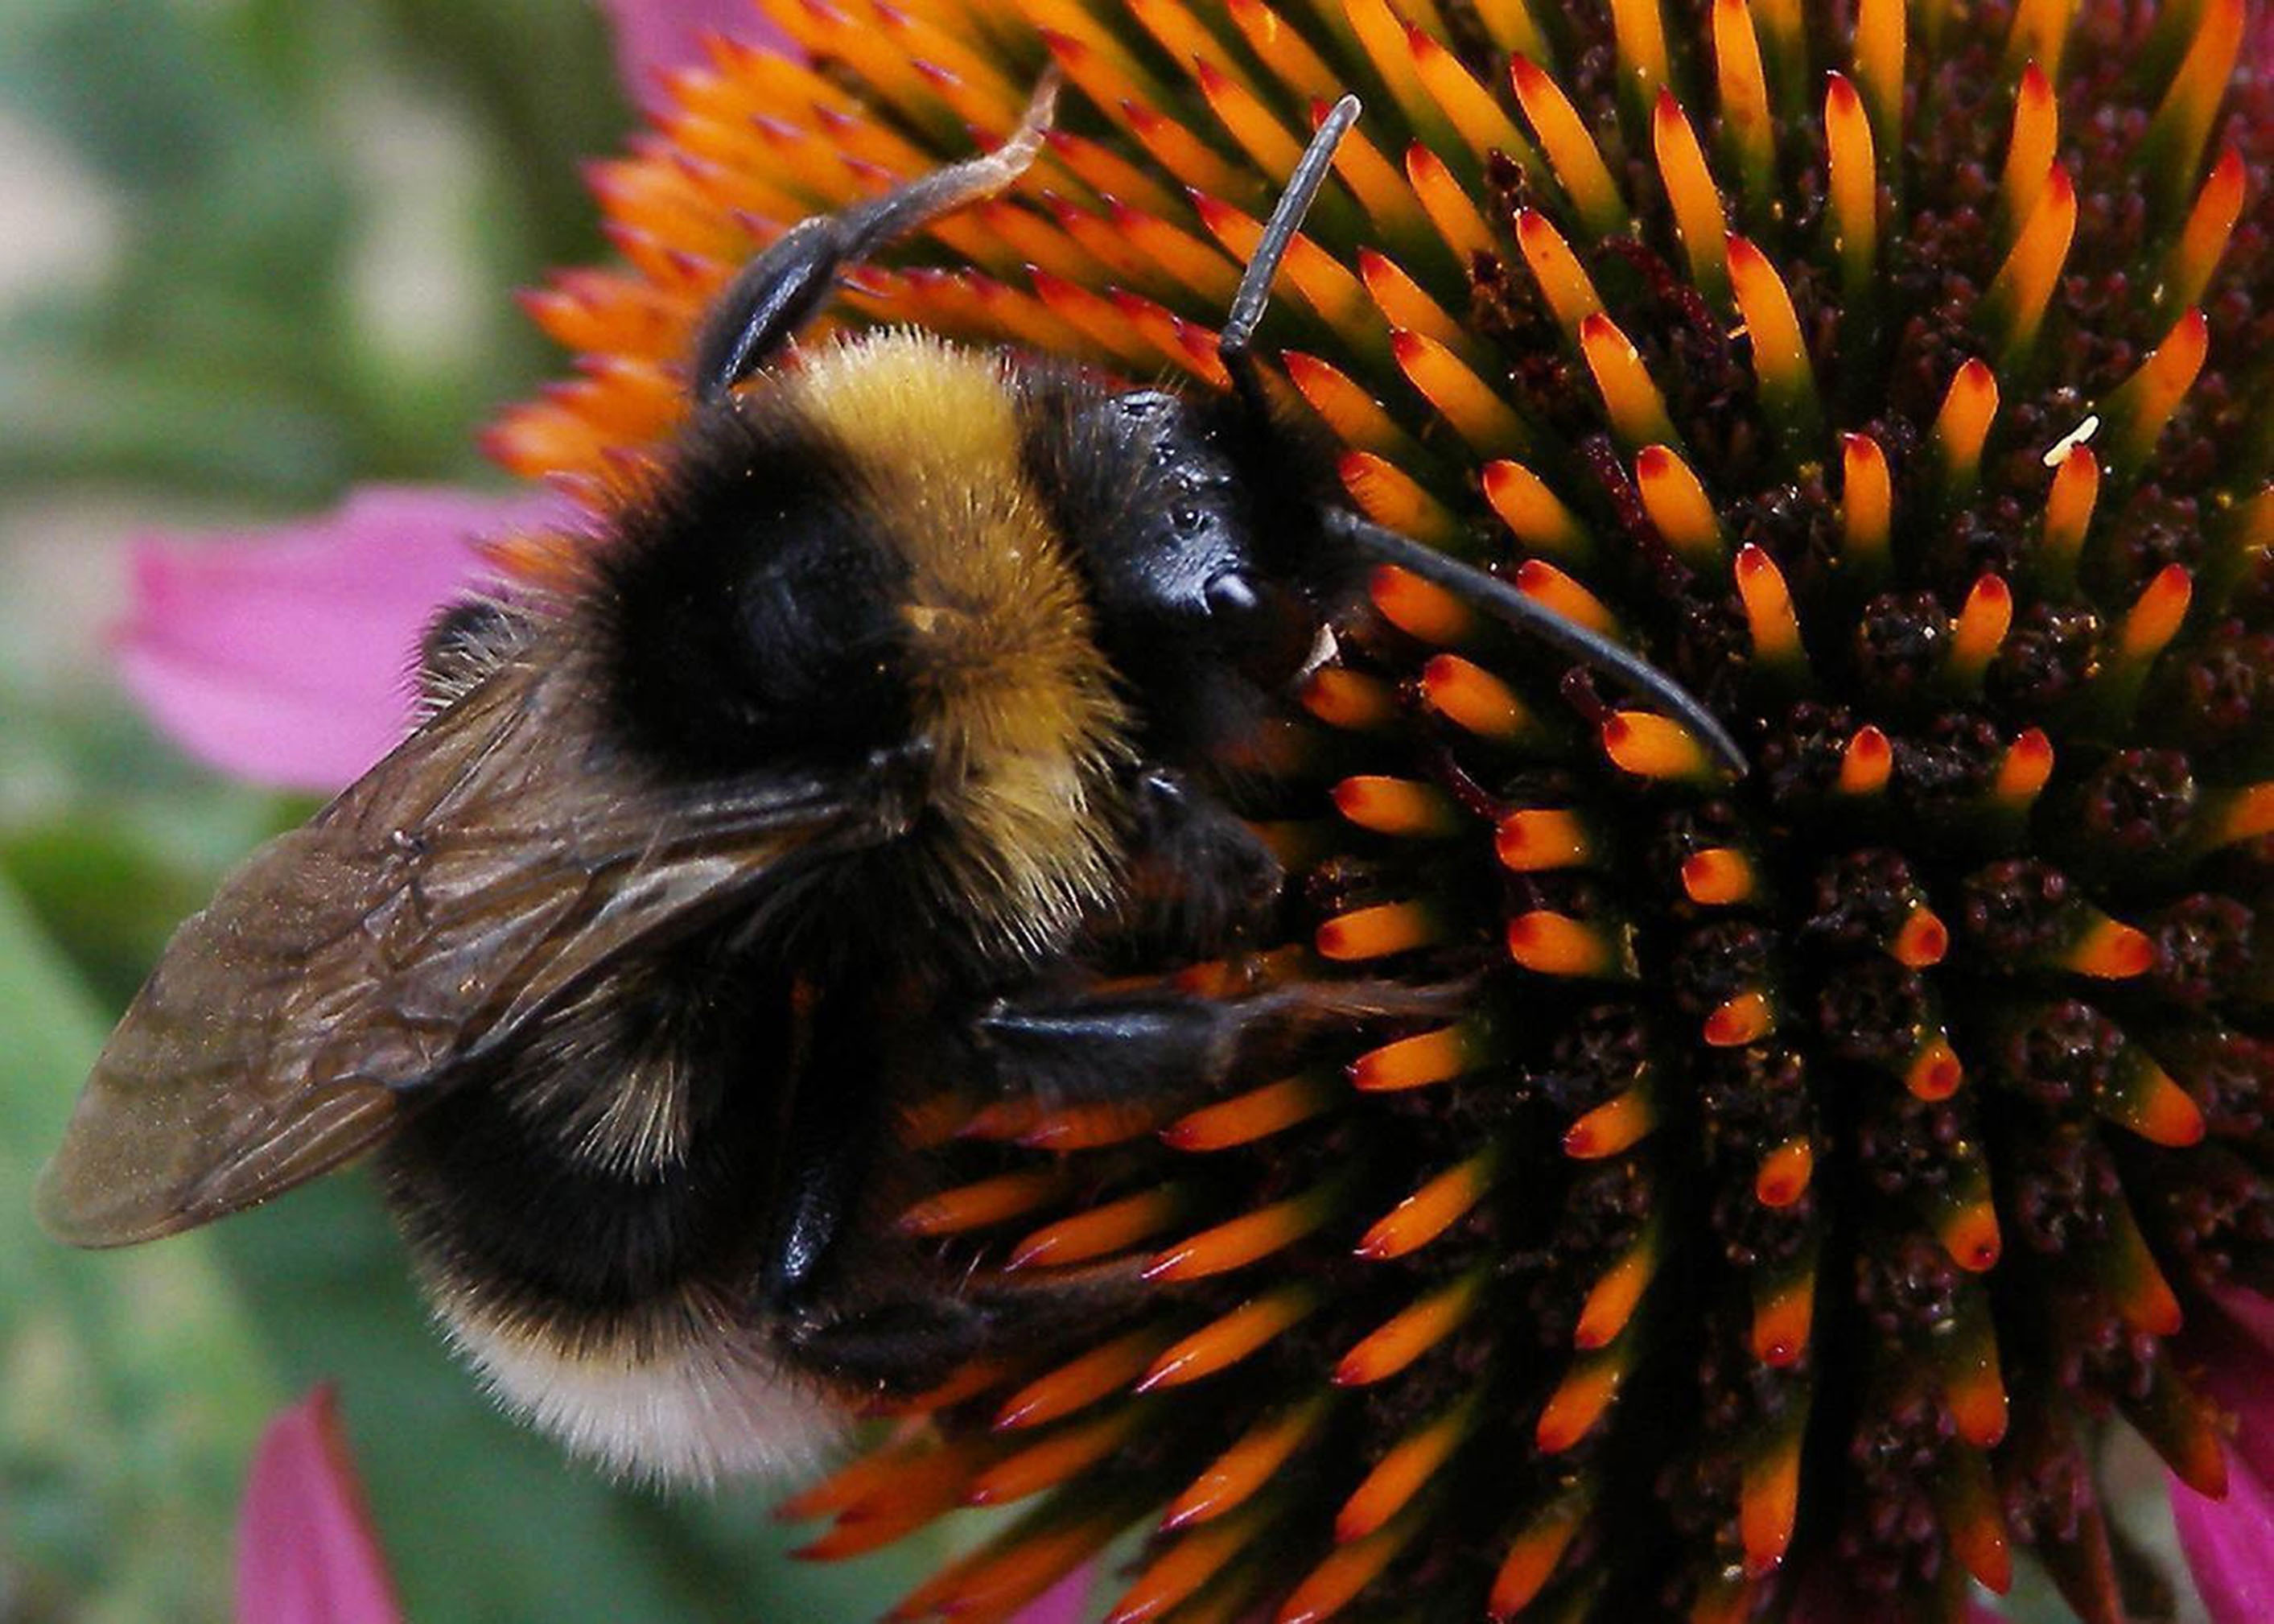 A bumblebee at work. Researchers now believe certain pesticides are stunting their ability to pollinate.